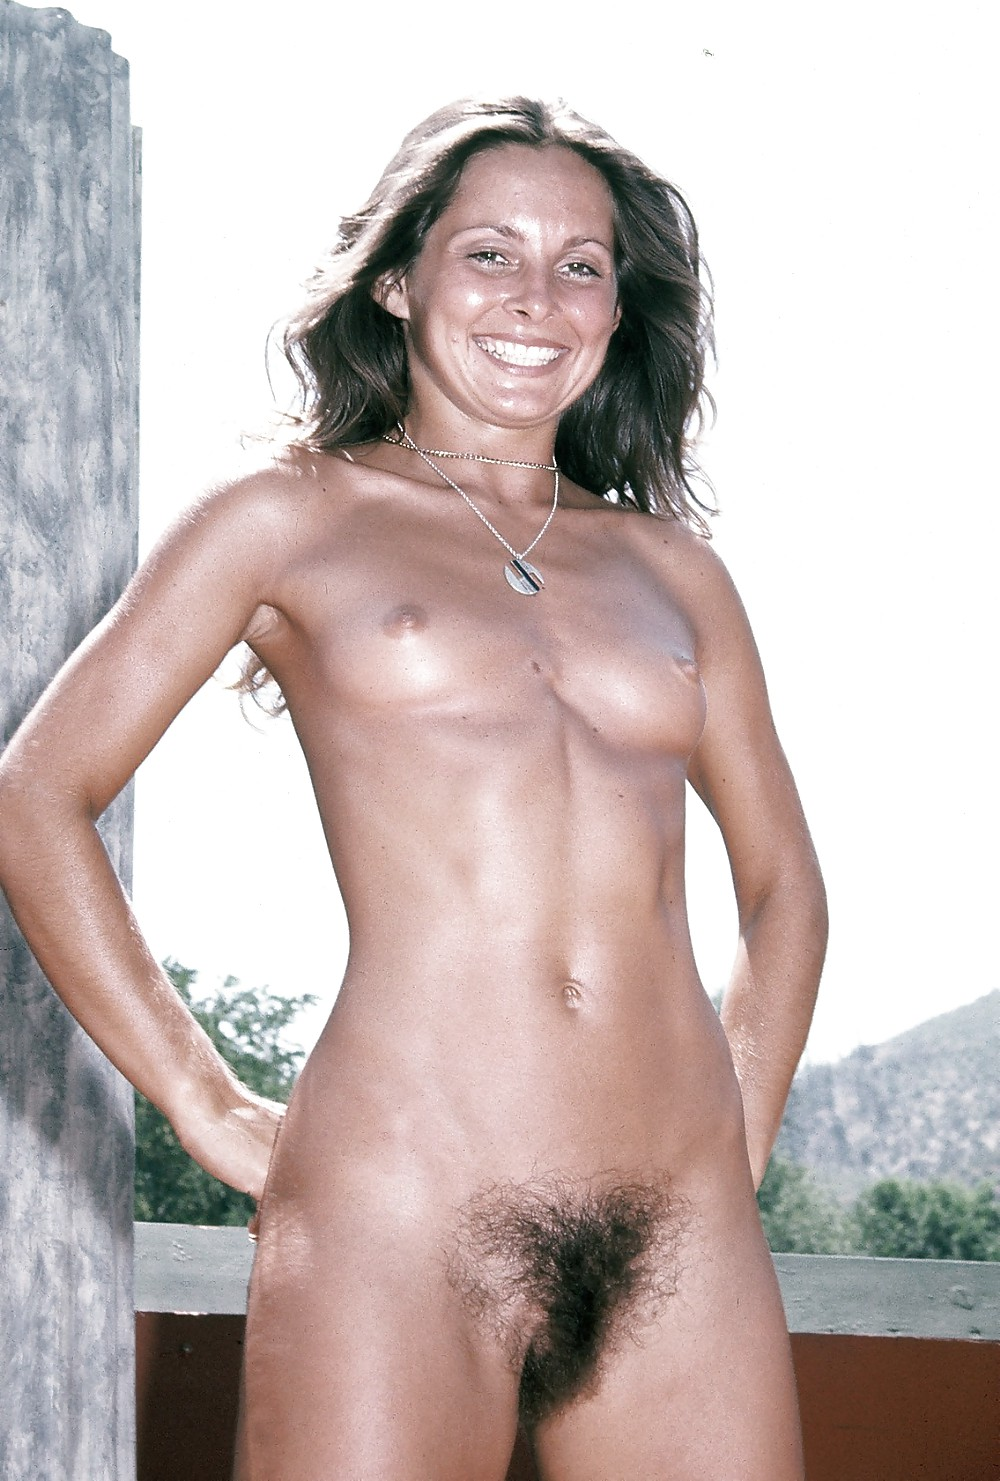 Vintage Nudists Natural Hairy Pussy - 35 Fotos - Xhamstercom-9110